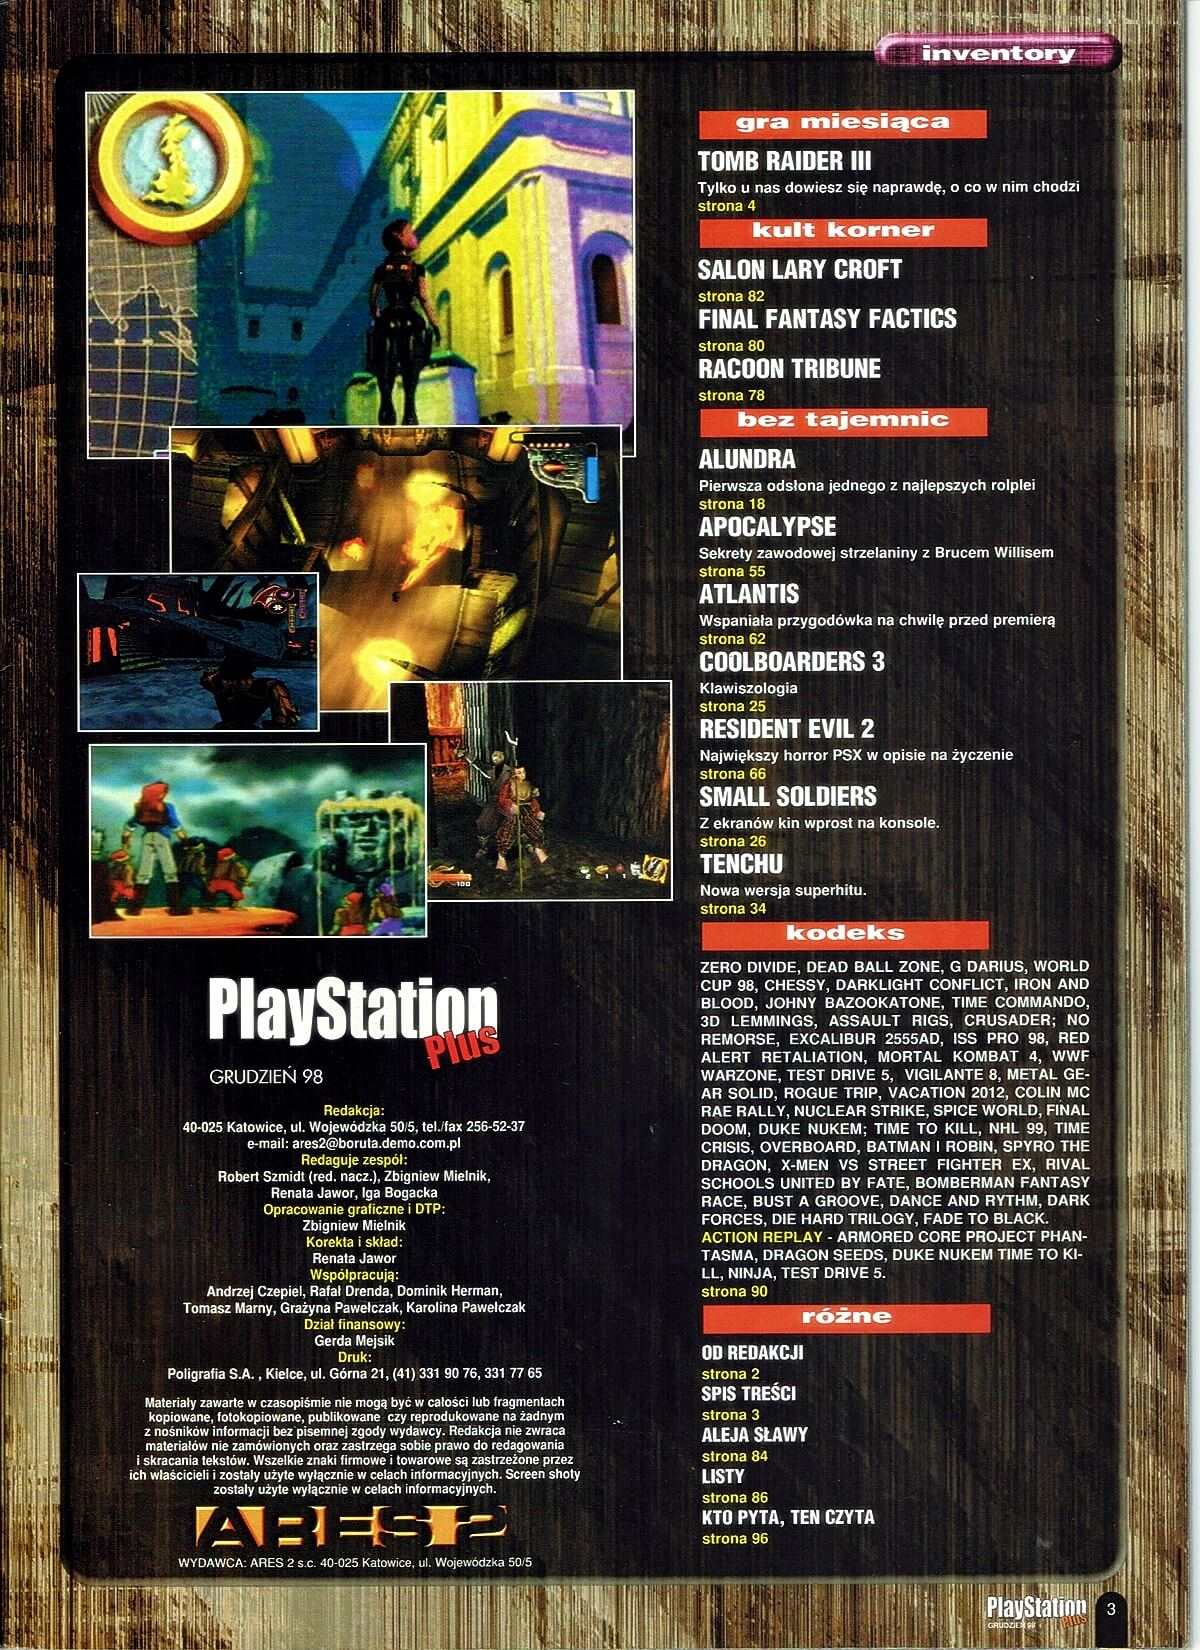 playstation plus magazyn 18 - PlayStation Plus 7/98